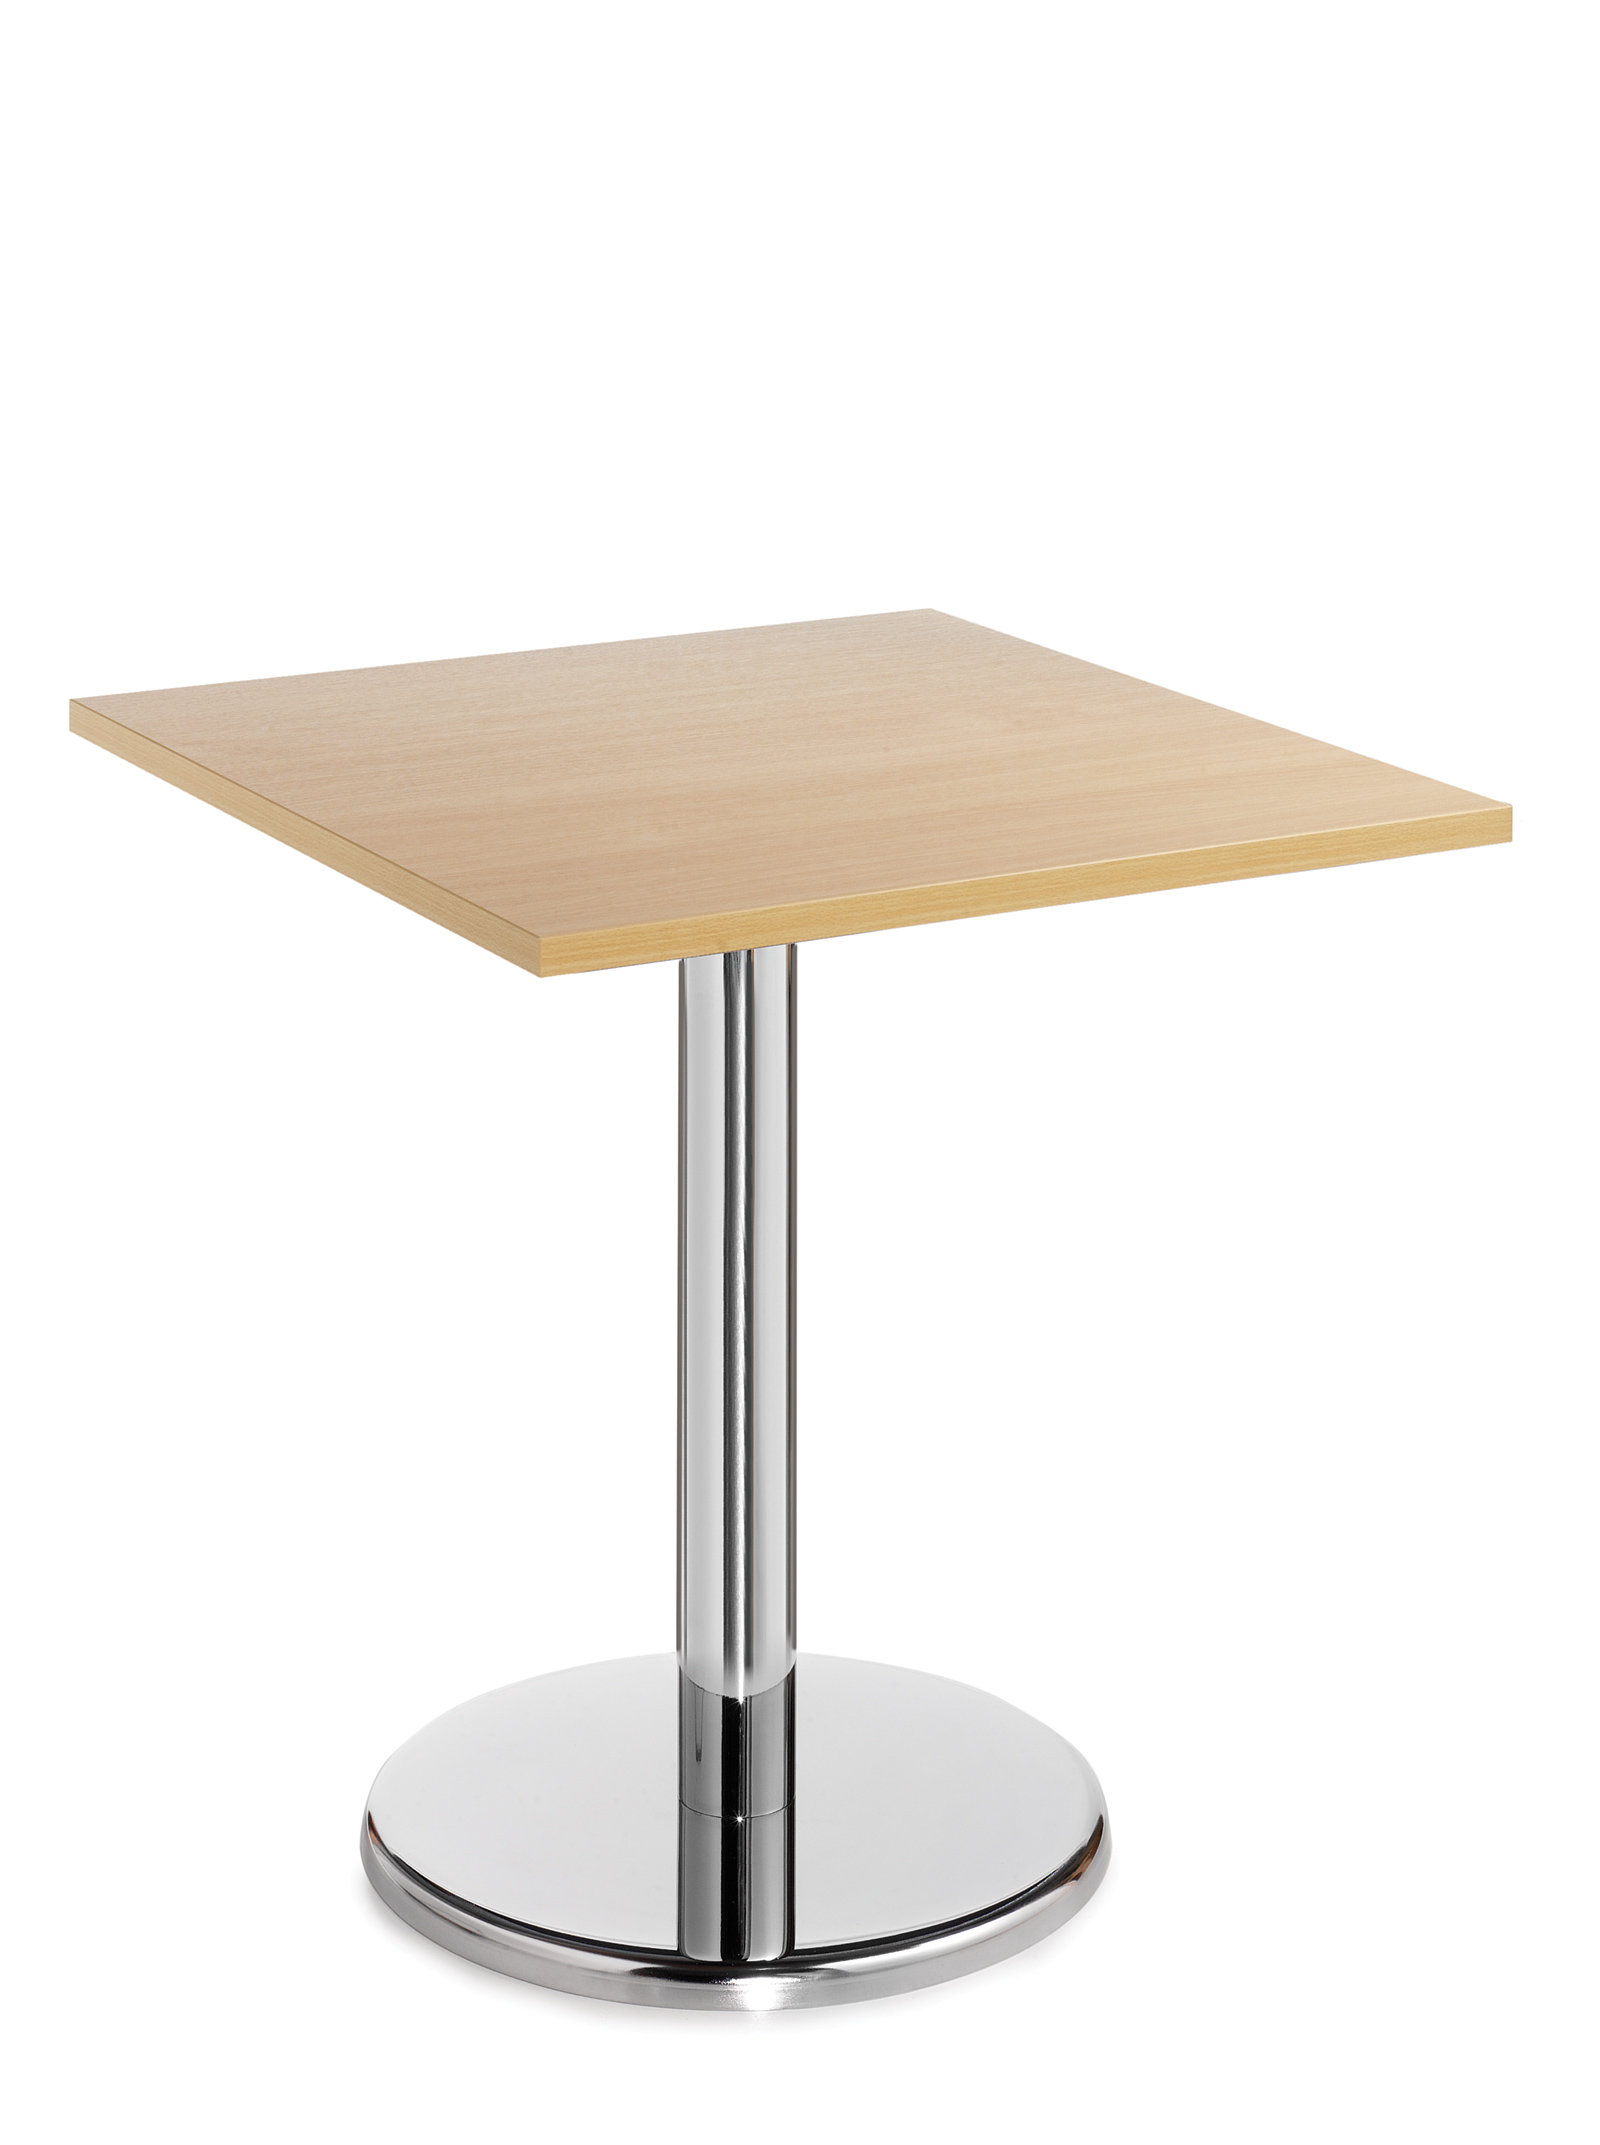 Pisa square table with round chrome base 700mm - beech